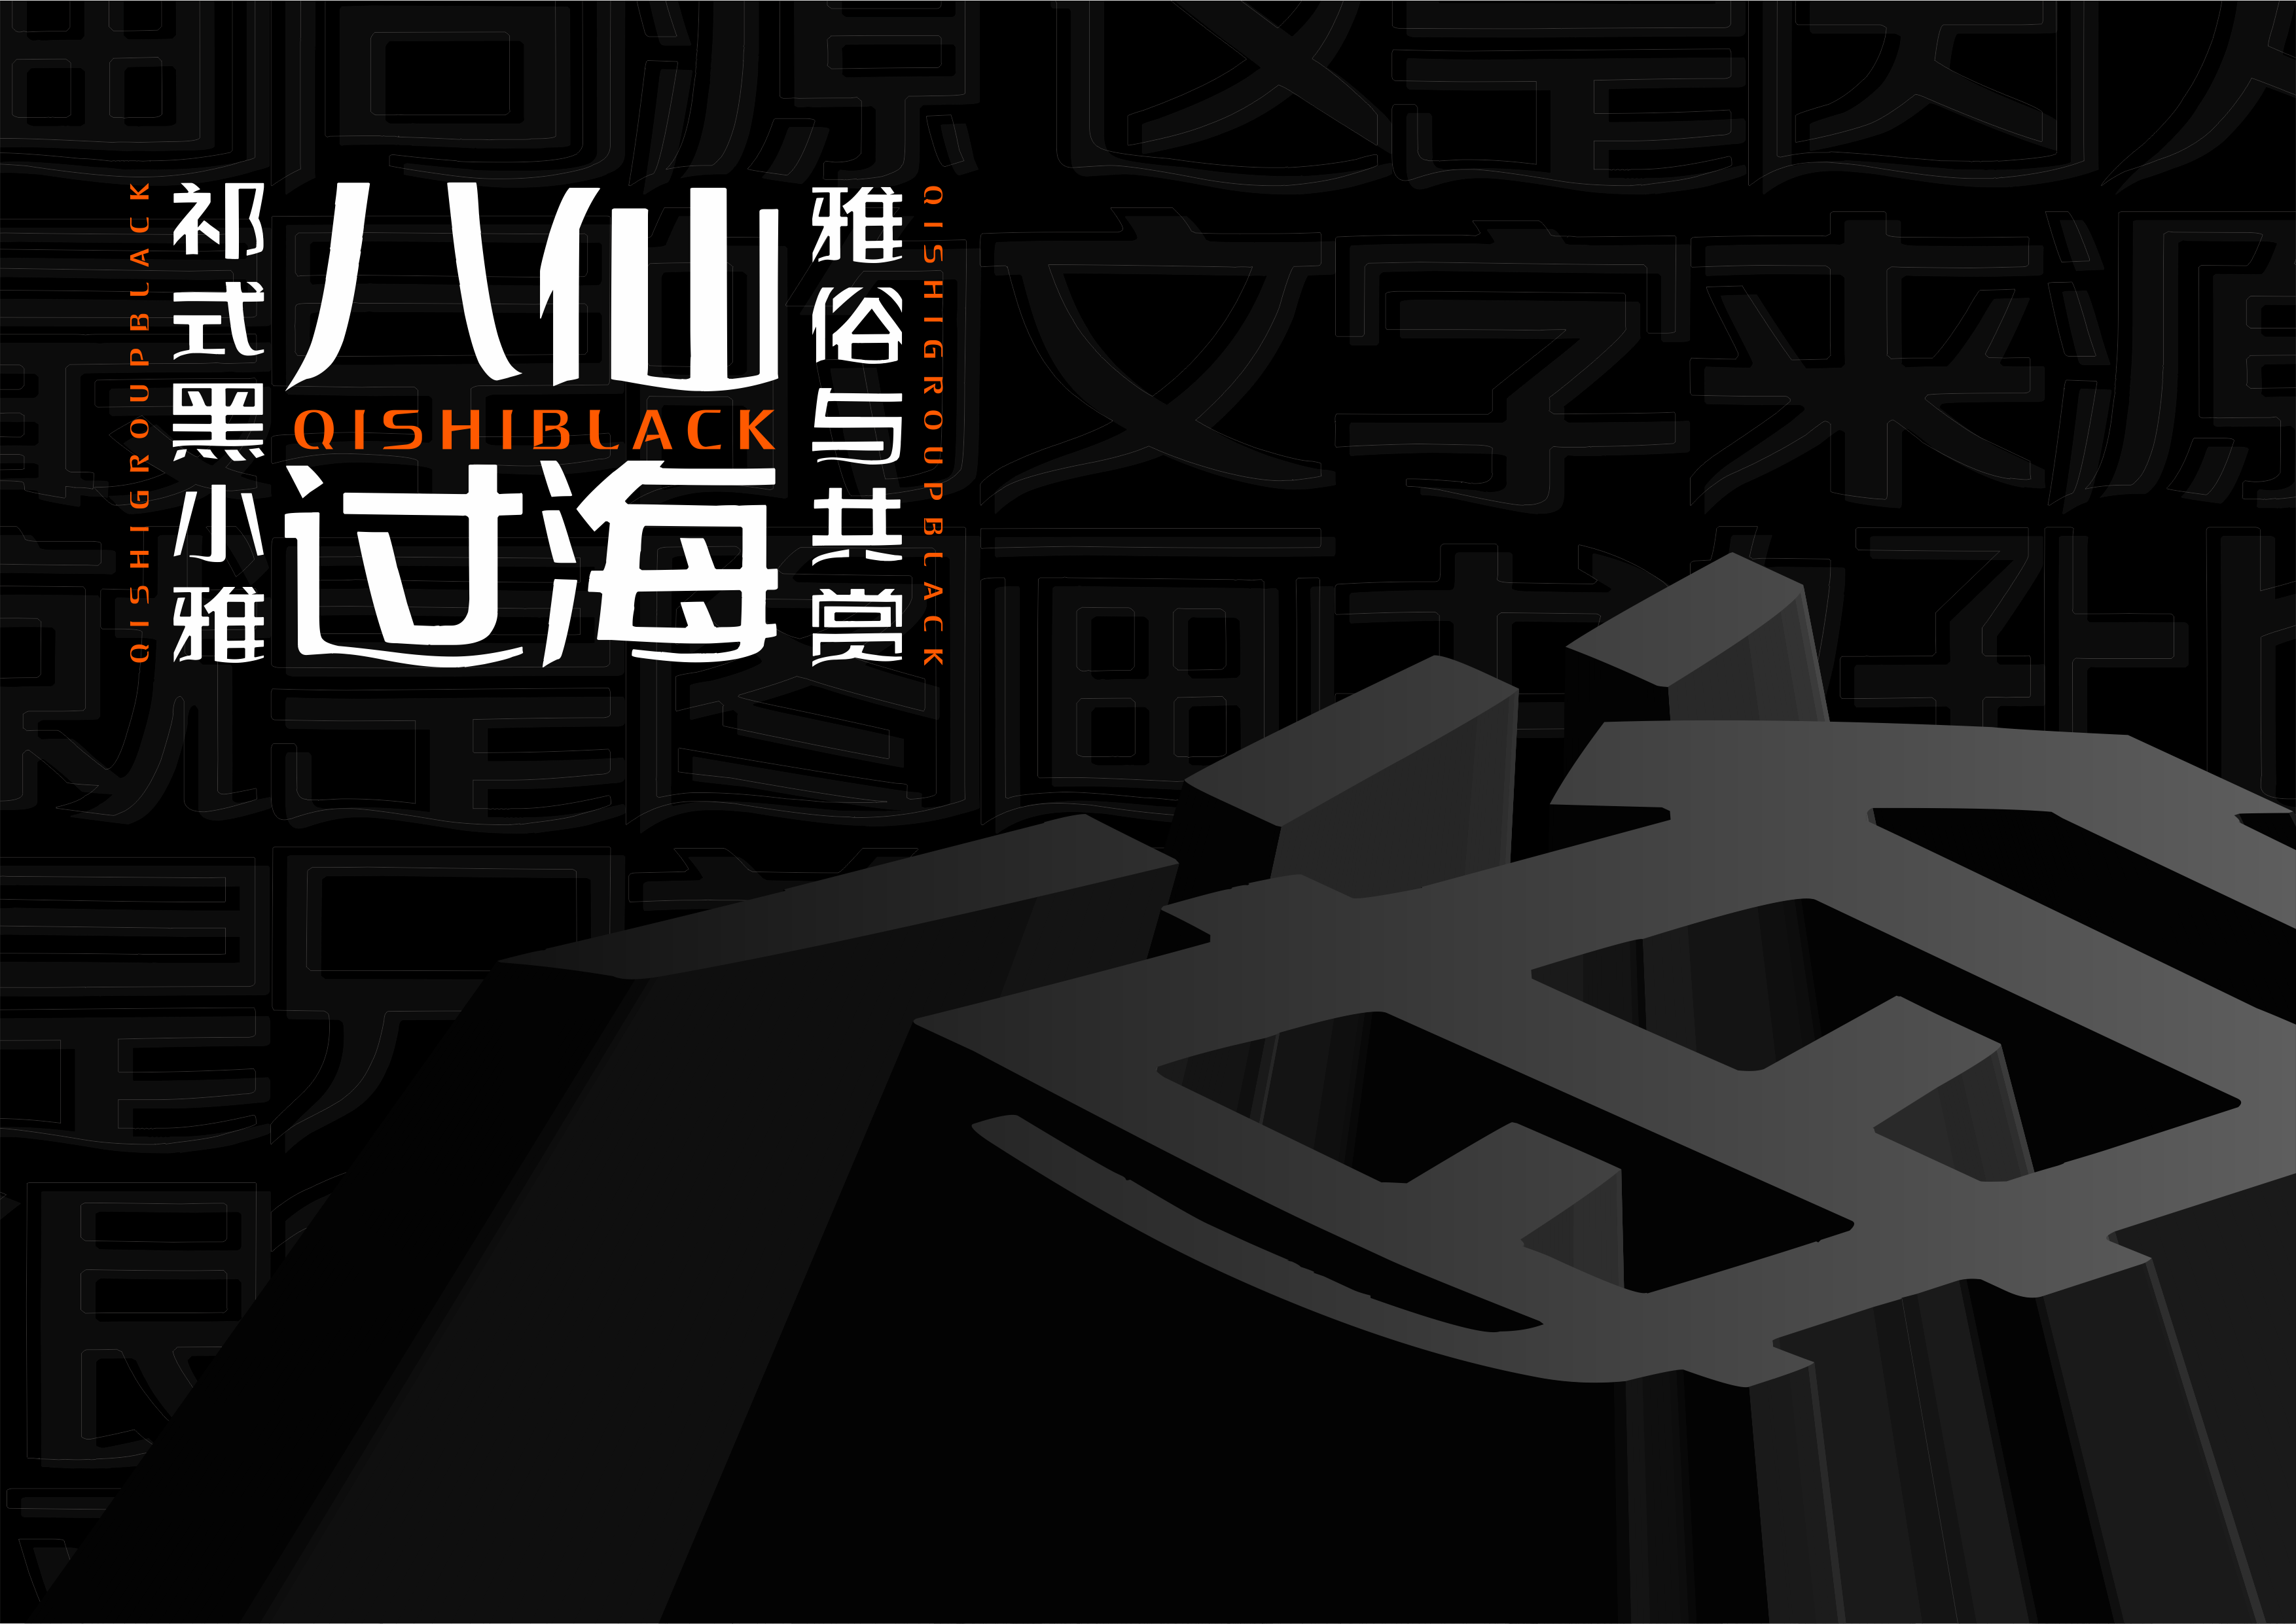 84P Collection of the latest Chinese font design schemes in 2021 #.304